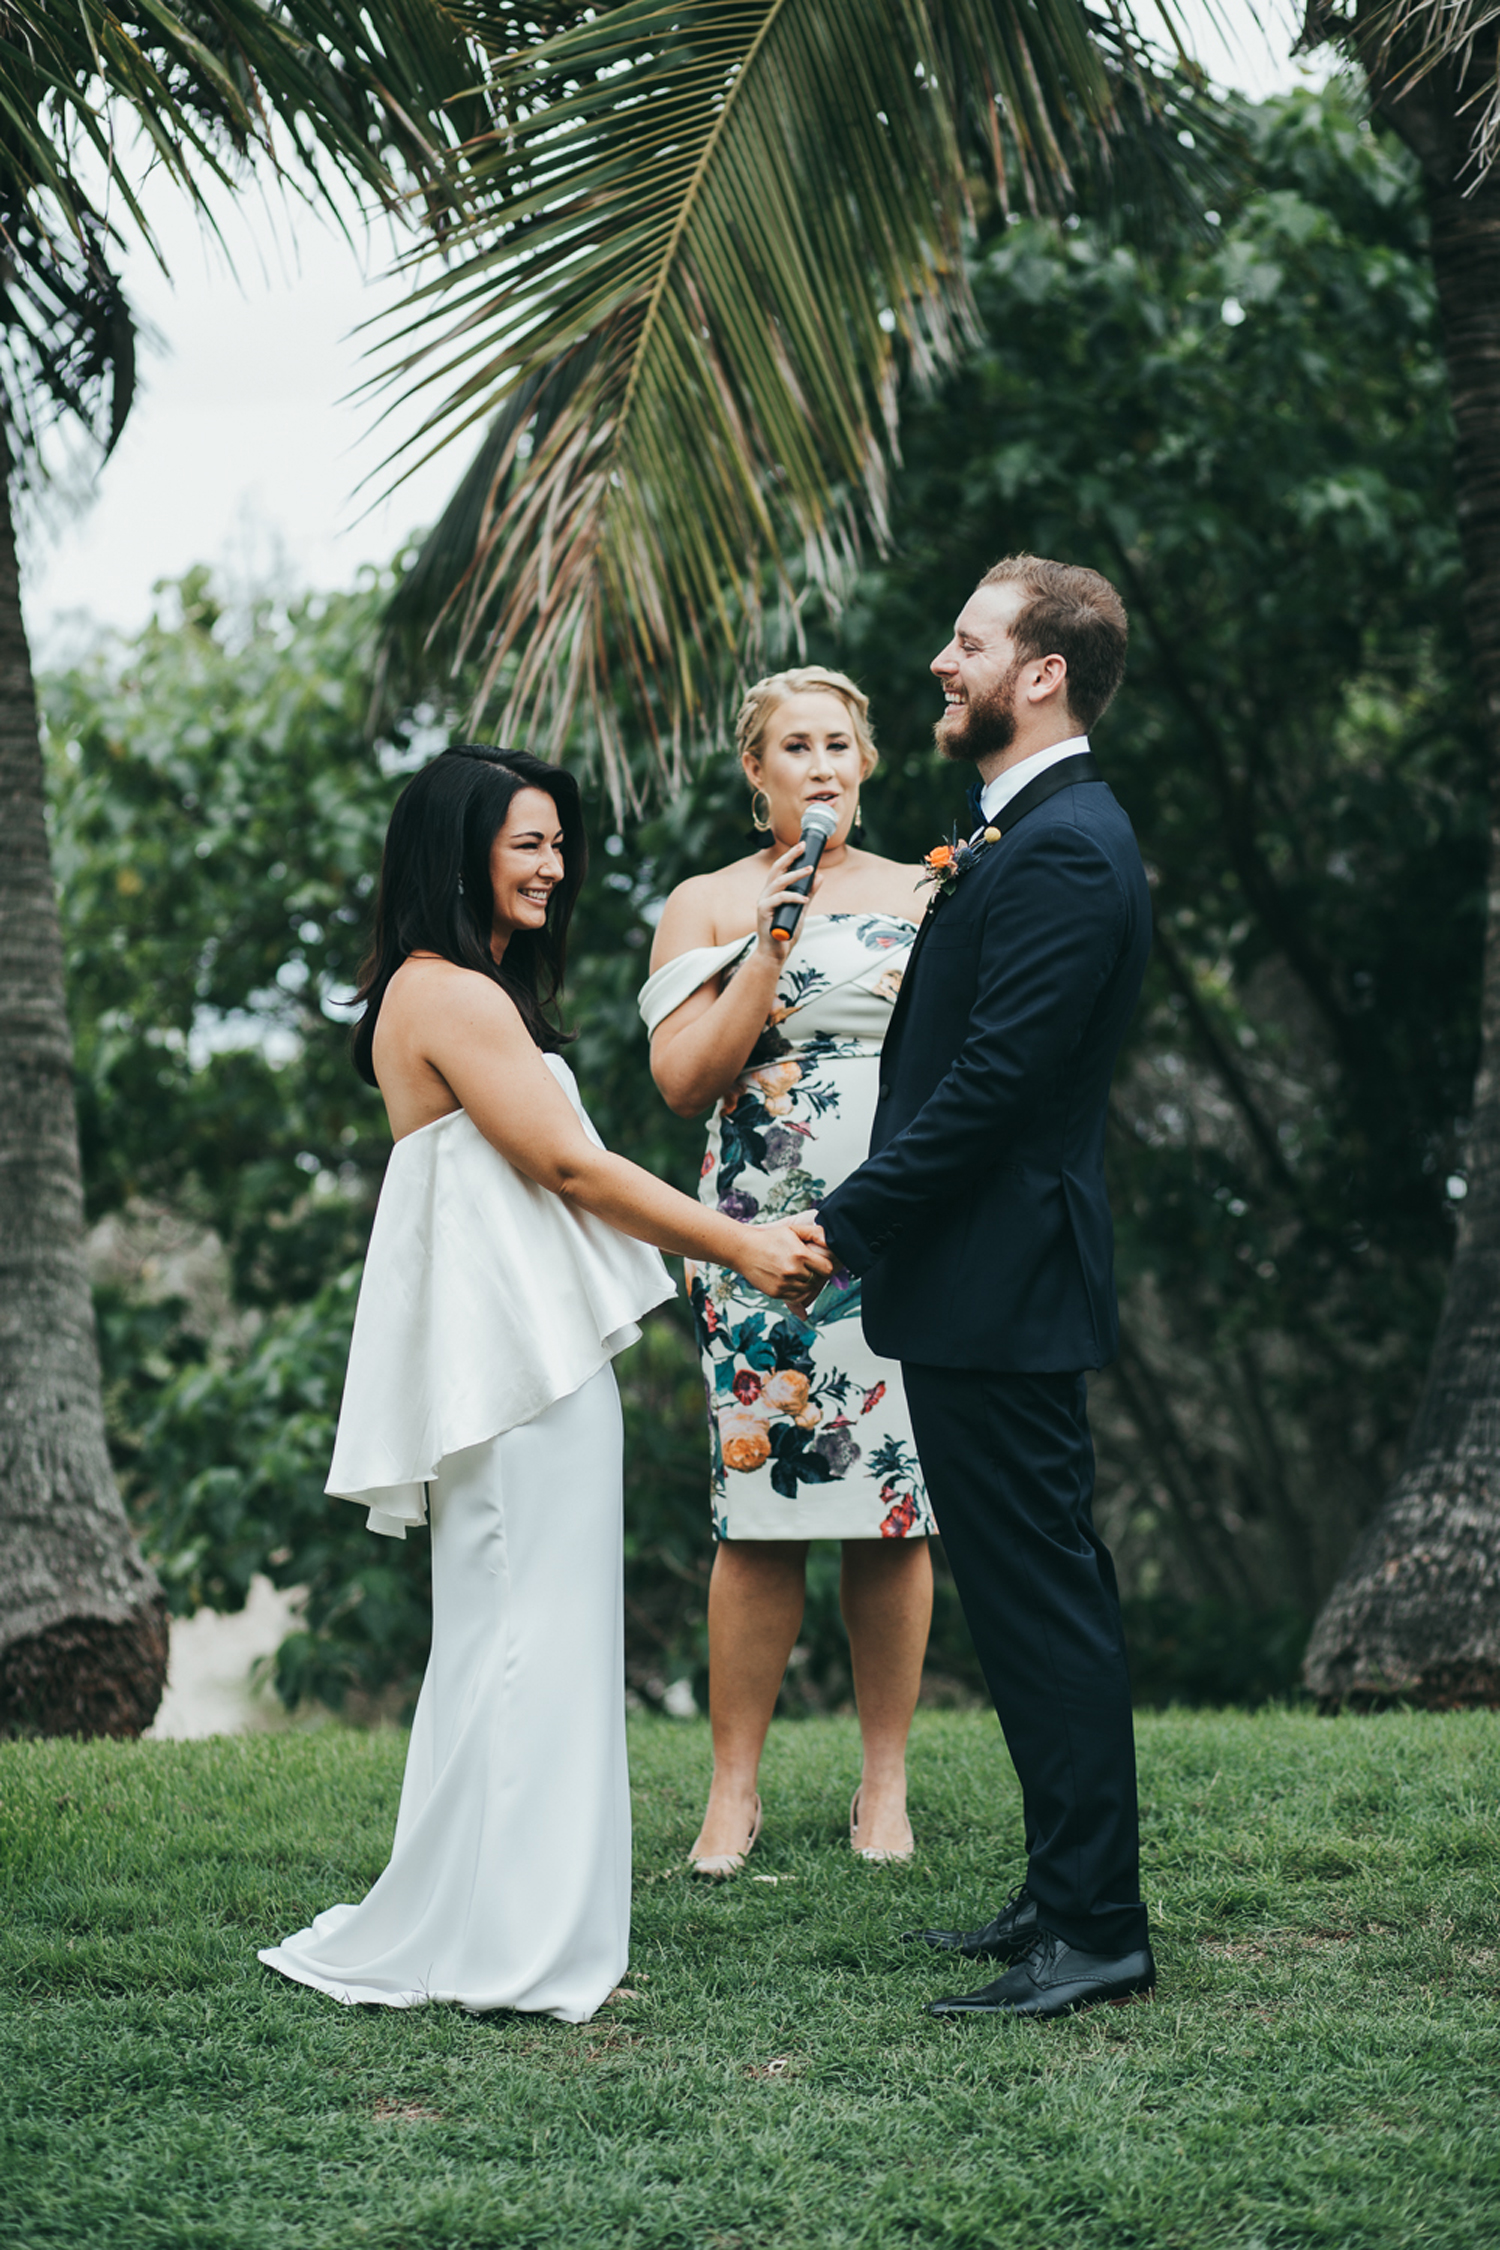 054-halcyon_house_byron_bay_wedding_photographer.jpg